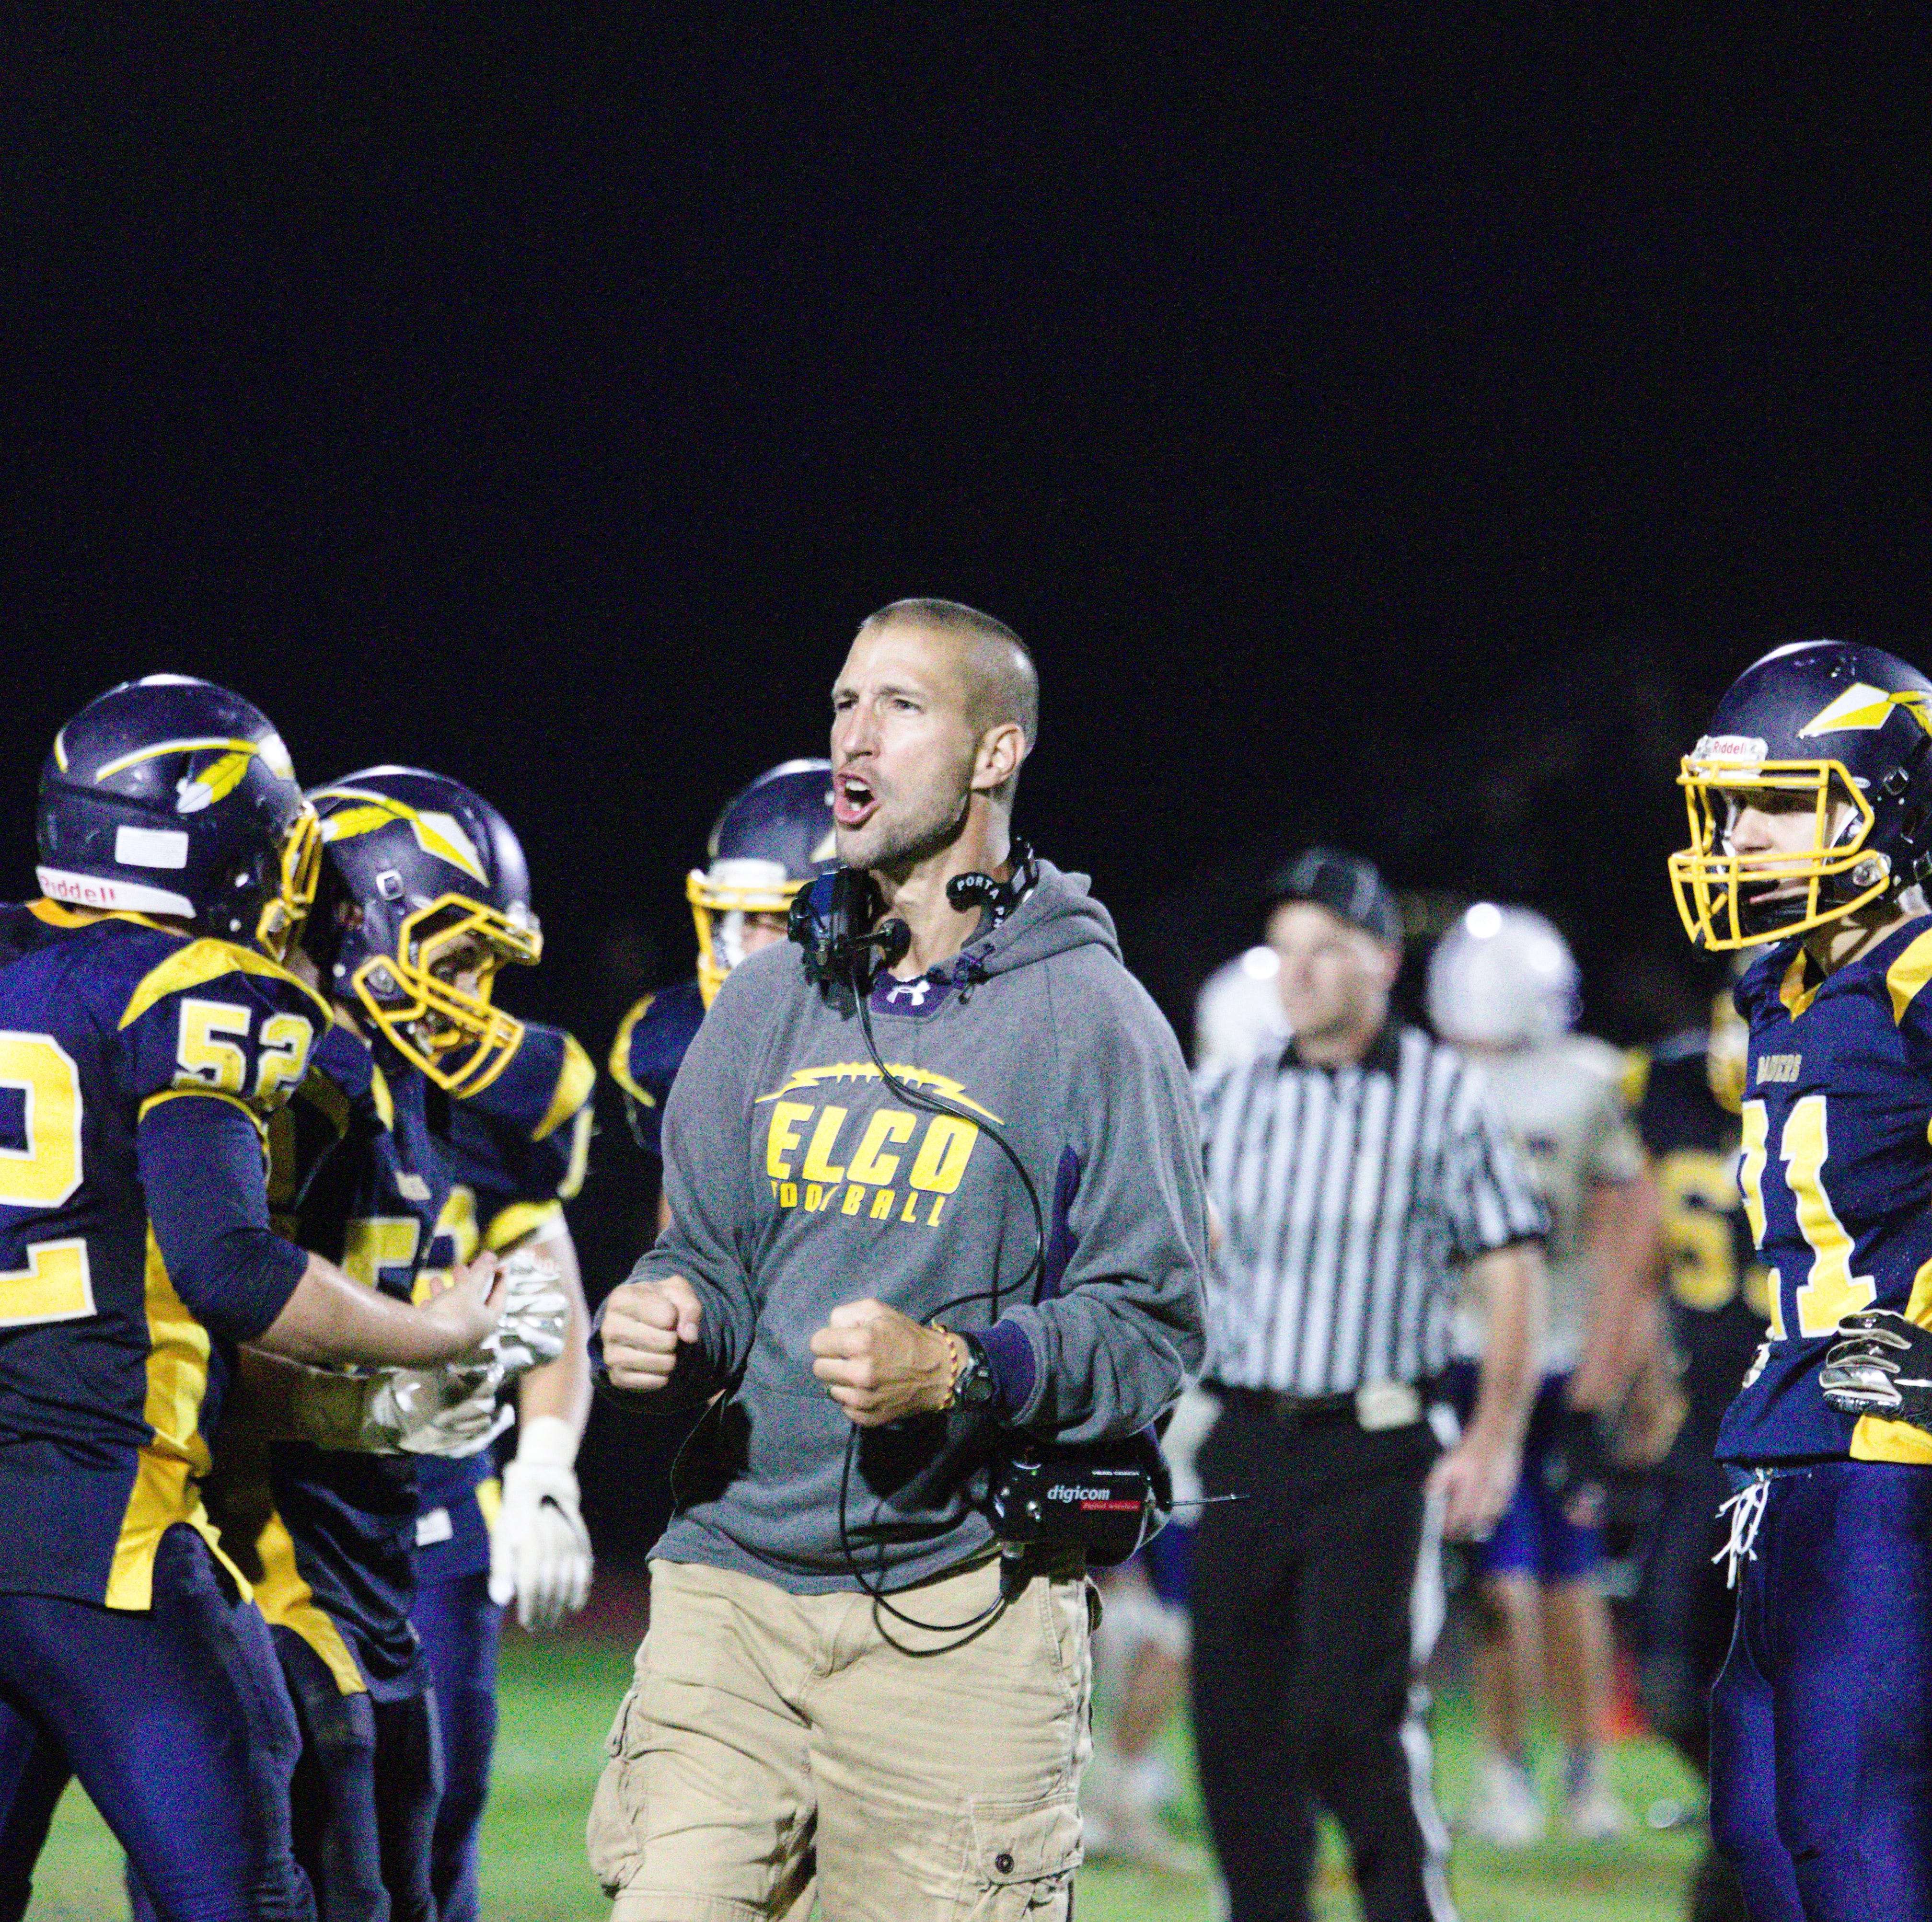 Late TD pass lifts Elco over Northern Lebanon